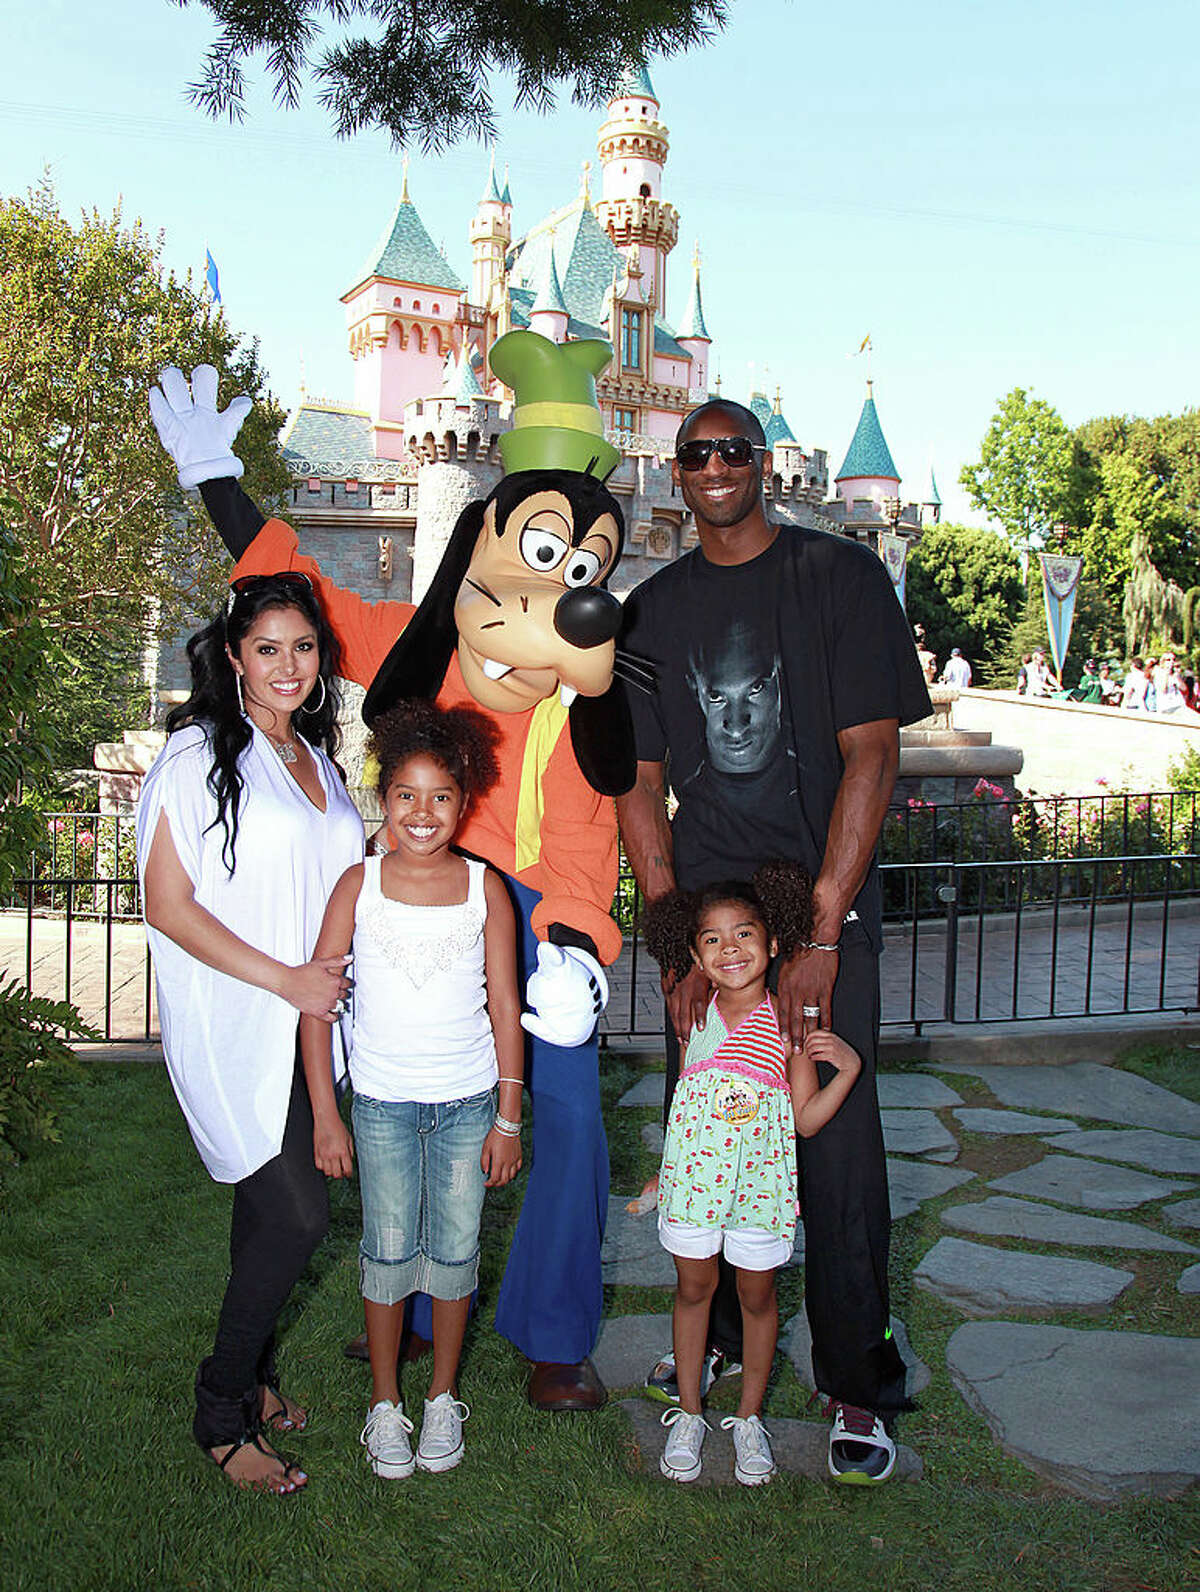 In this handout image provided by Disney, Los Angeles Lakers star Kobe Bryant (R), wife Vanessa Bryant (L) and daughters Natalia (2nd from R) and Gianna (3rd from R) celebrate the Lakers' NBA championship with Goofy at Disneyland on June 22, 2010 in Anaheim, California. (Photo by Paul Hiffmeyer/Disney via Getty Images)